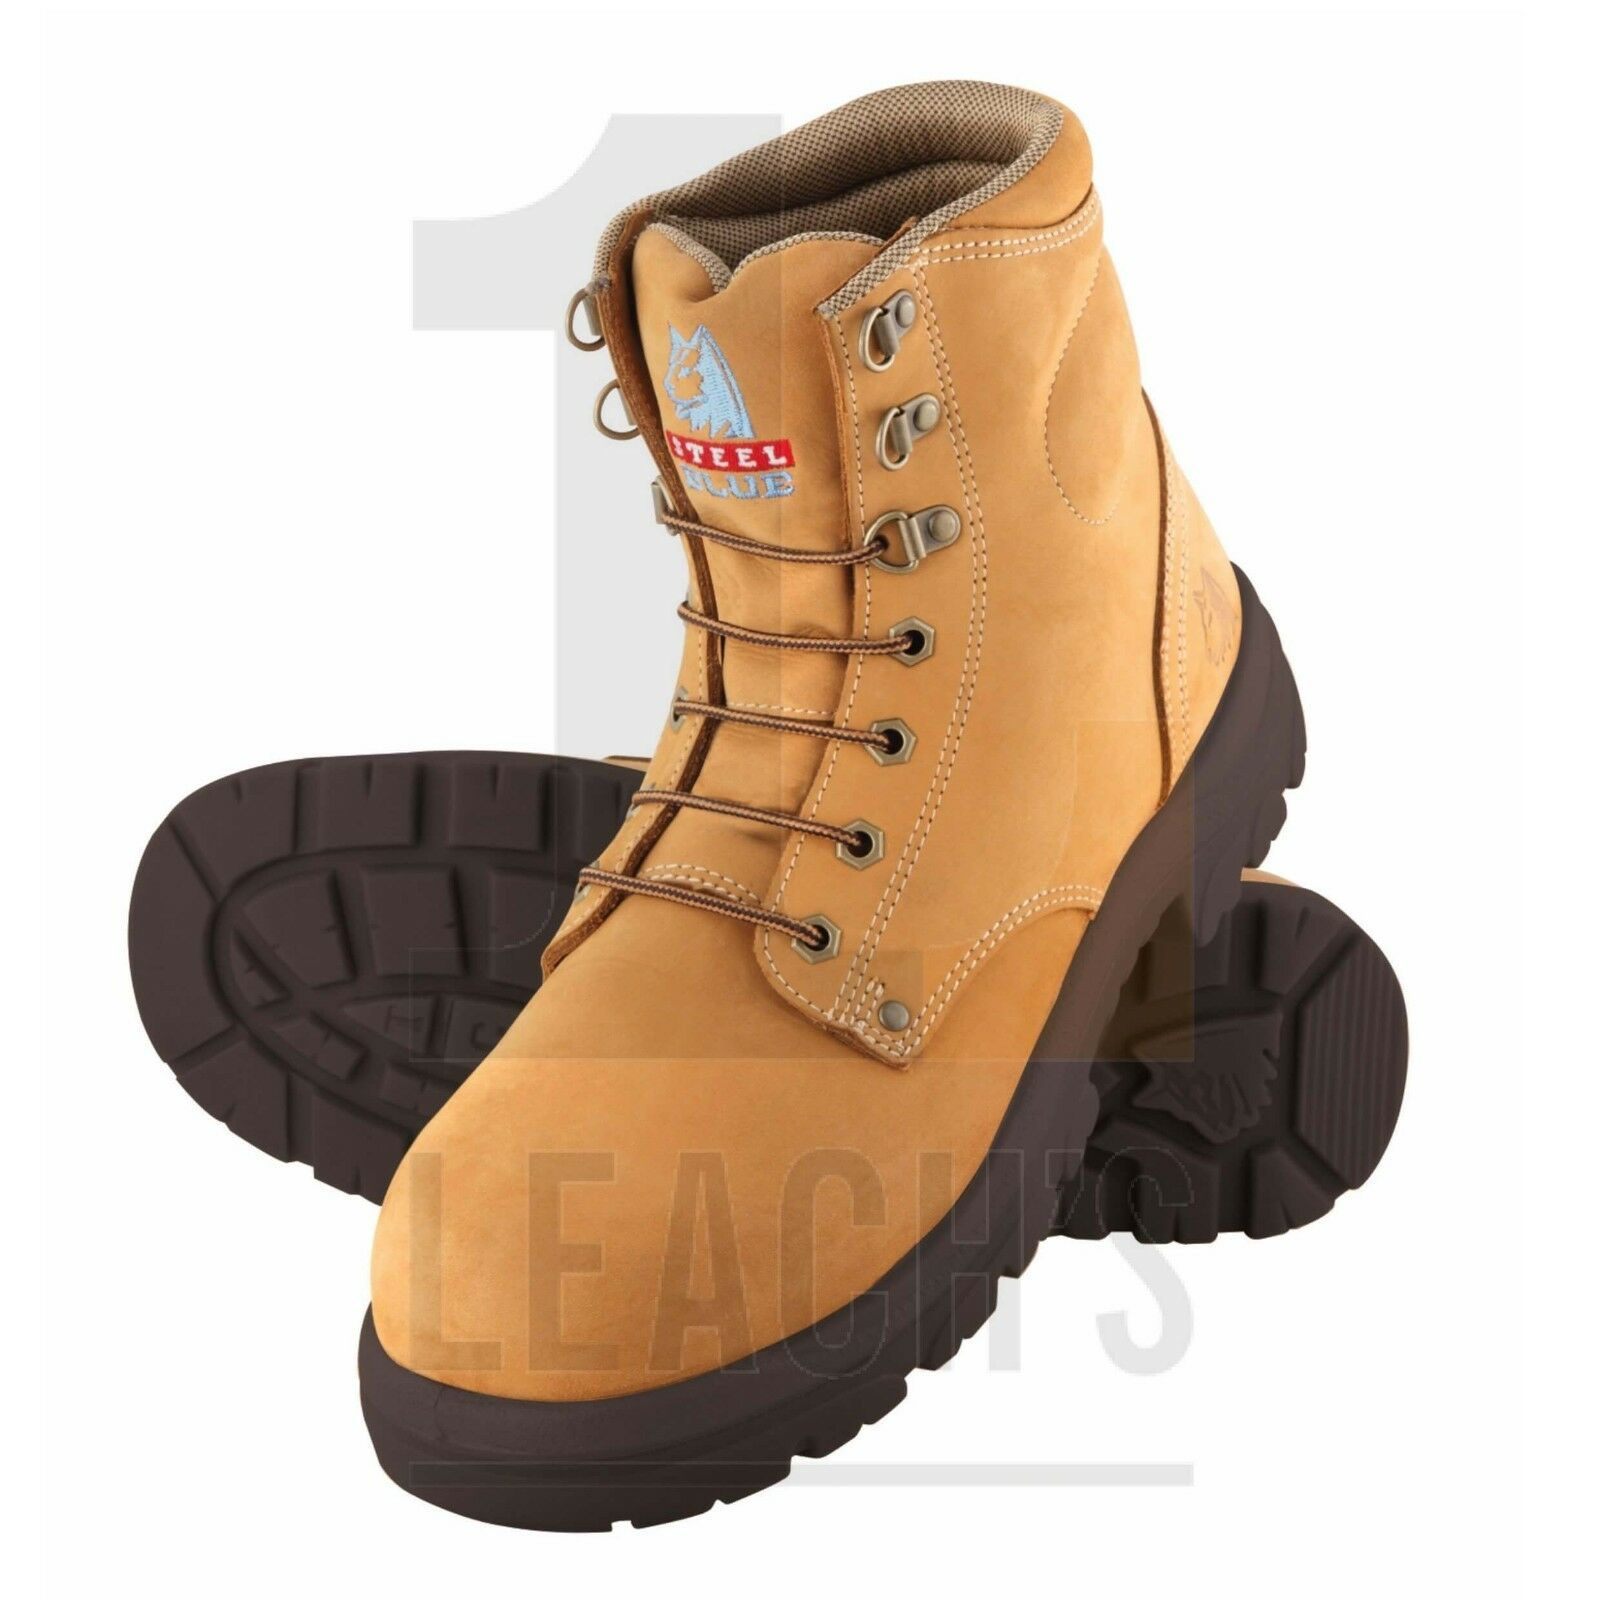 STEEL blueE WORK SAFETY BOOTS IN SIZE 7 41 WHEAT STEEL TOE CAP COMFORT RRP